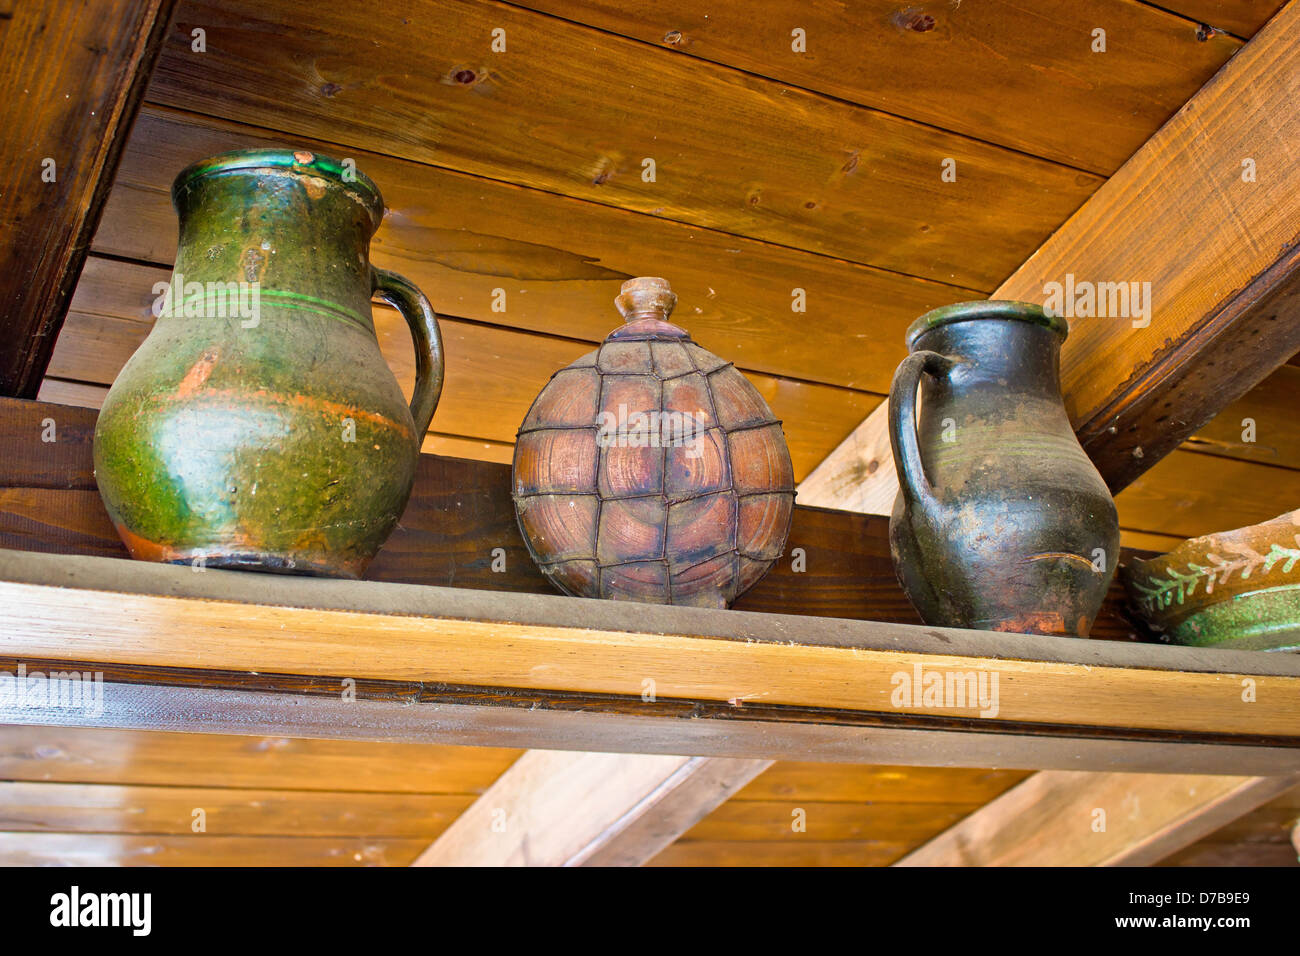 Two pots and copper canteen on wooden background - Stock Image